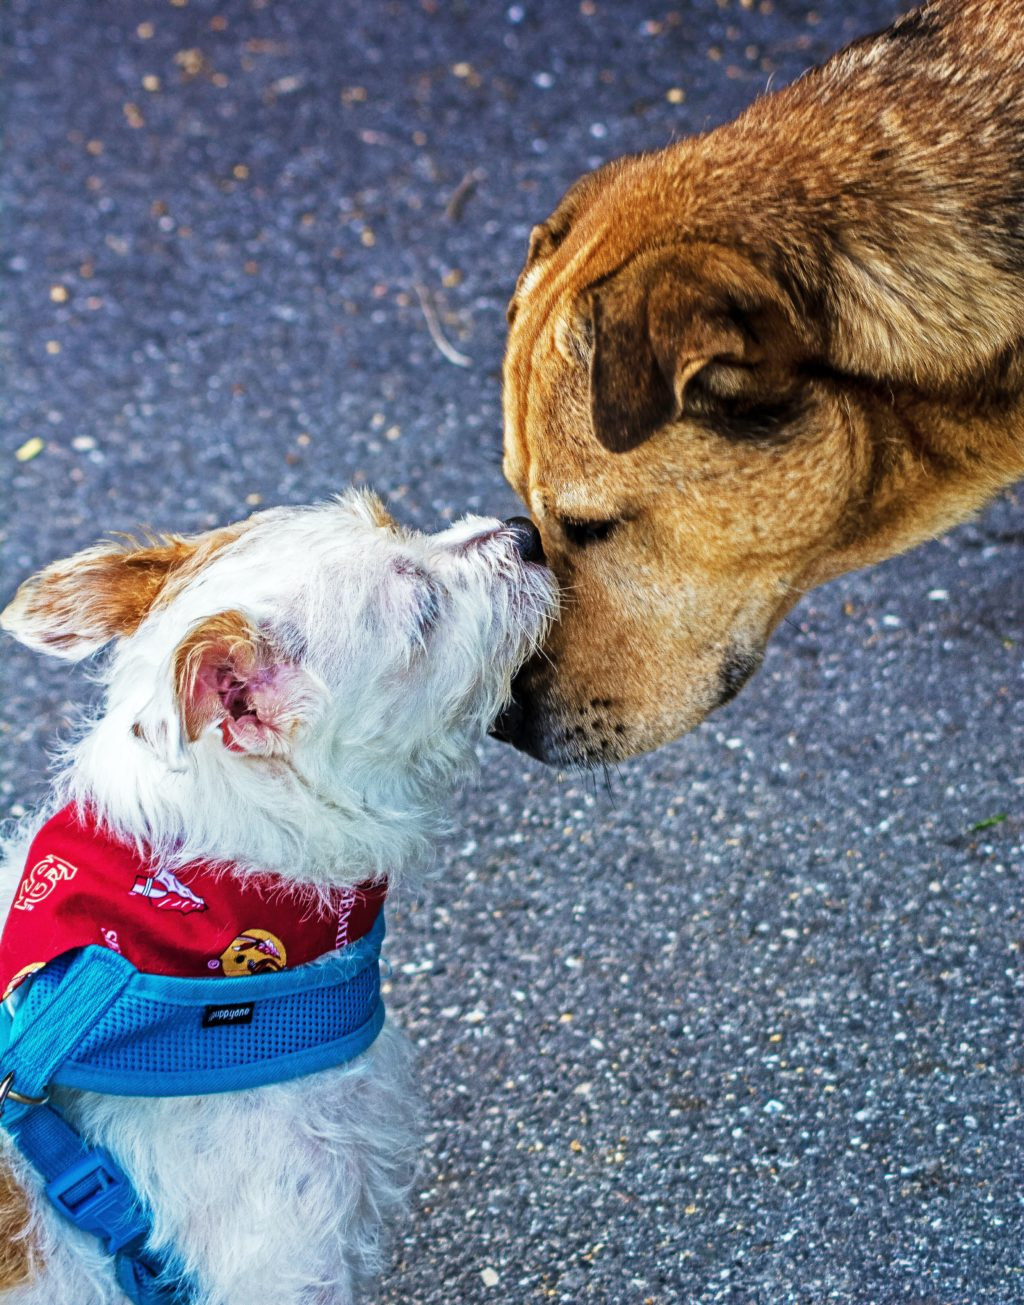 White dog with a red bandana kissing a bigger yellow dog